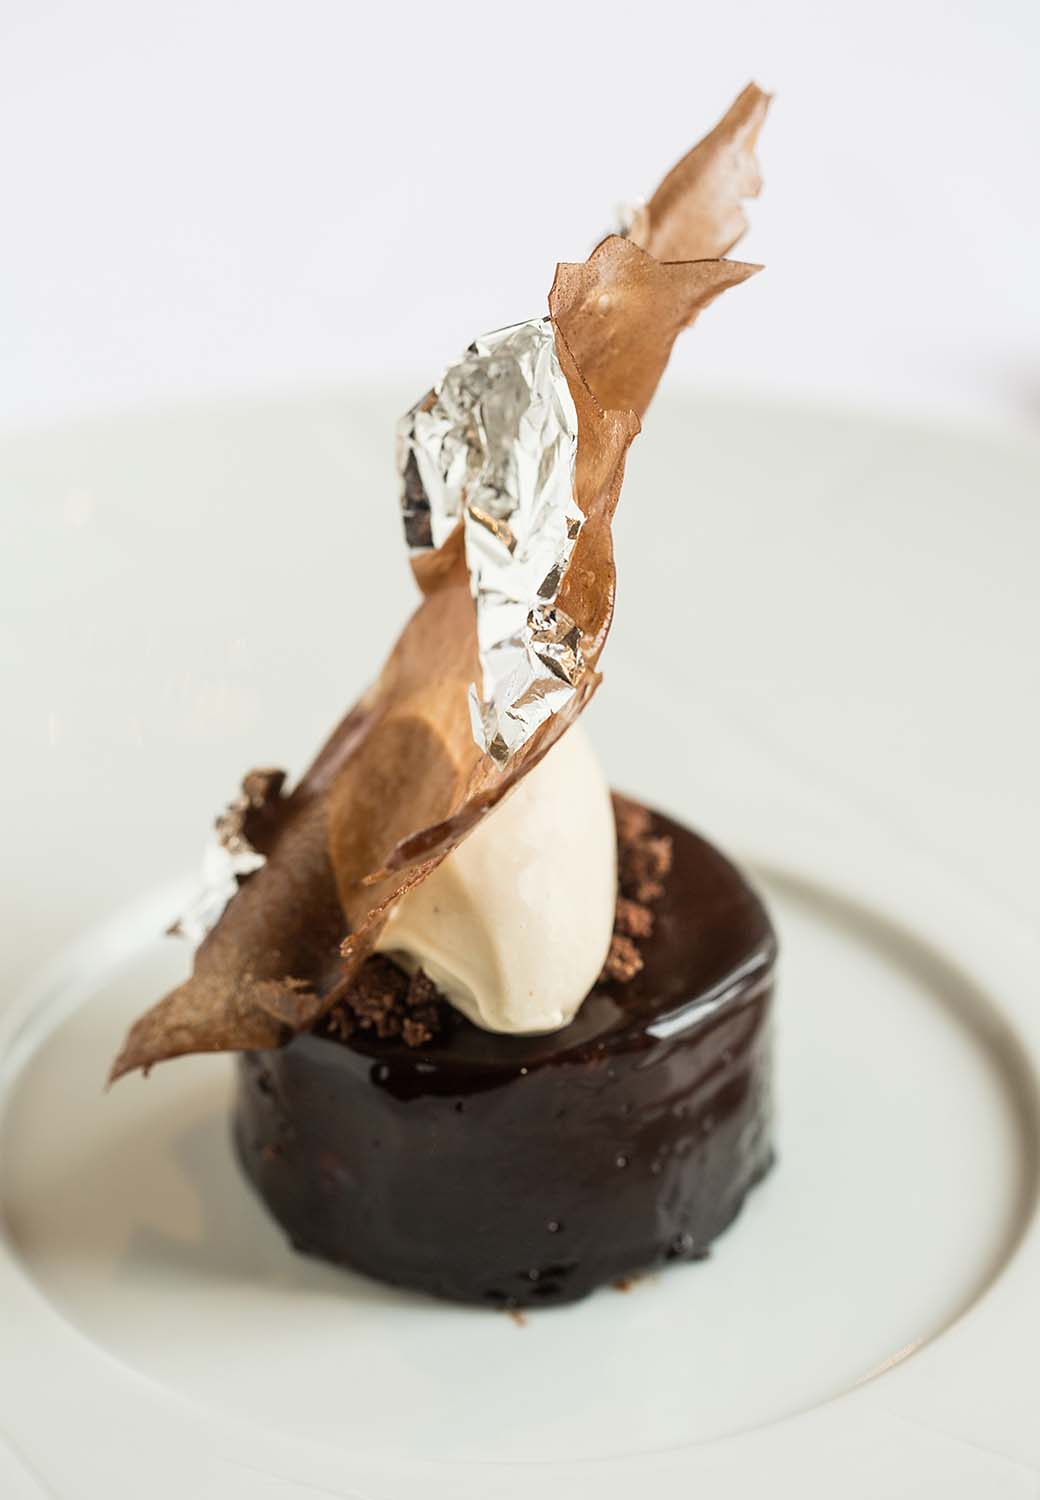 Fine dining desserts in Worcestershire